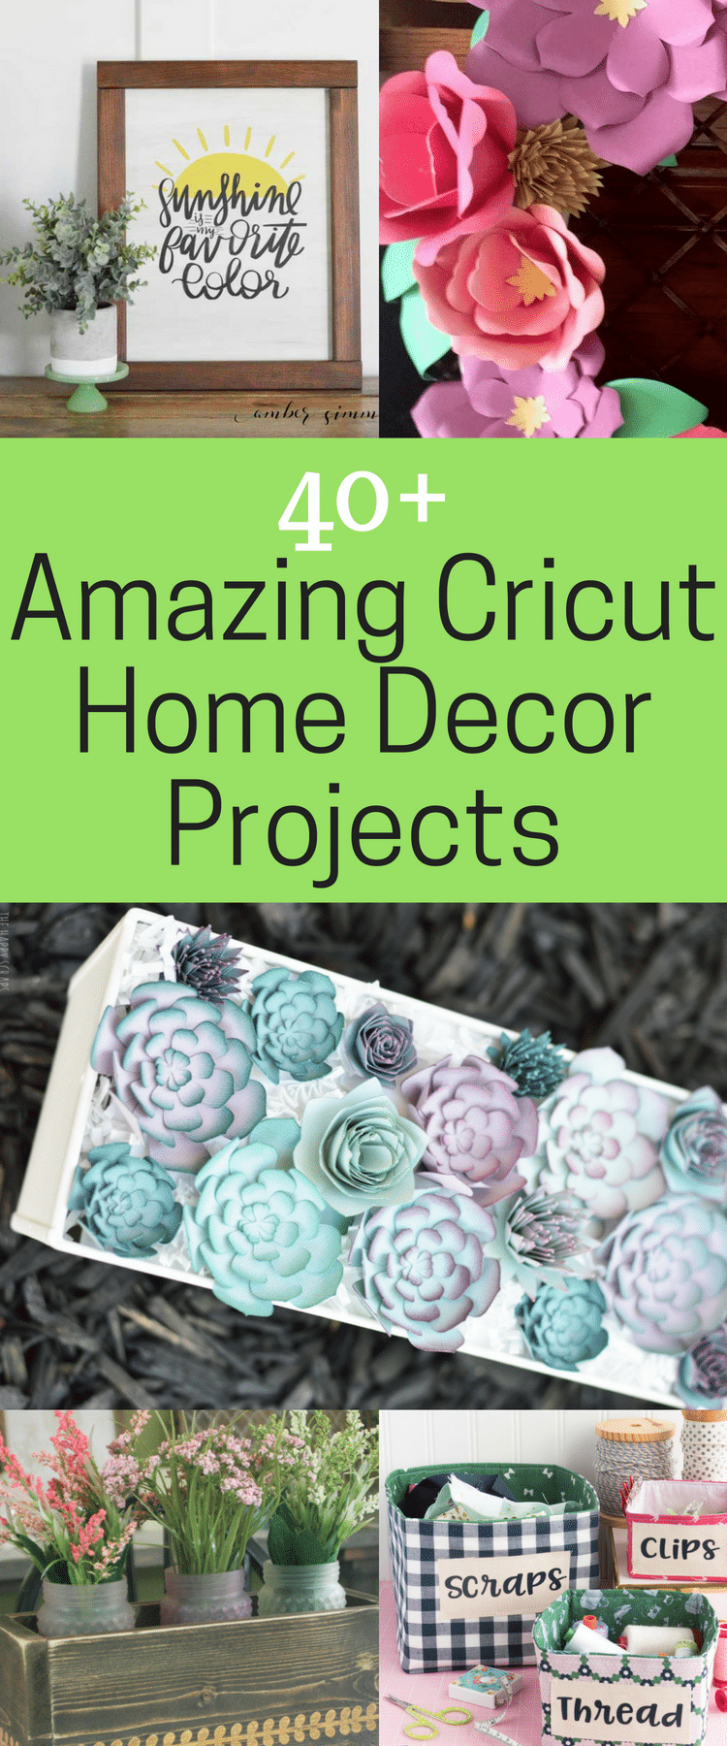 9+ of the BEST Cricut Home Décor Projects - Clarks Condensed - diy home decor with cricut